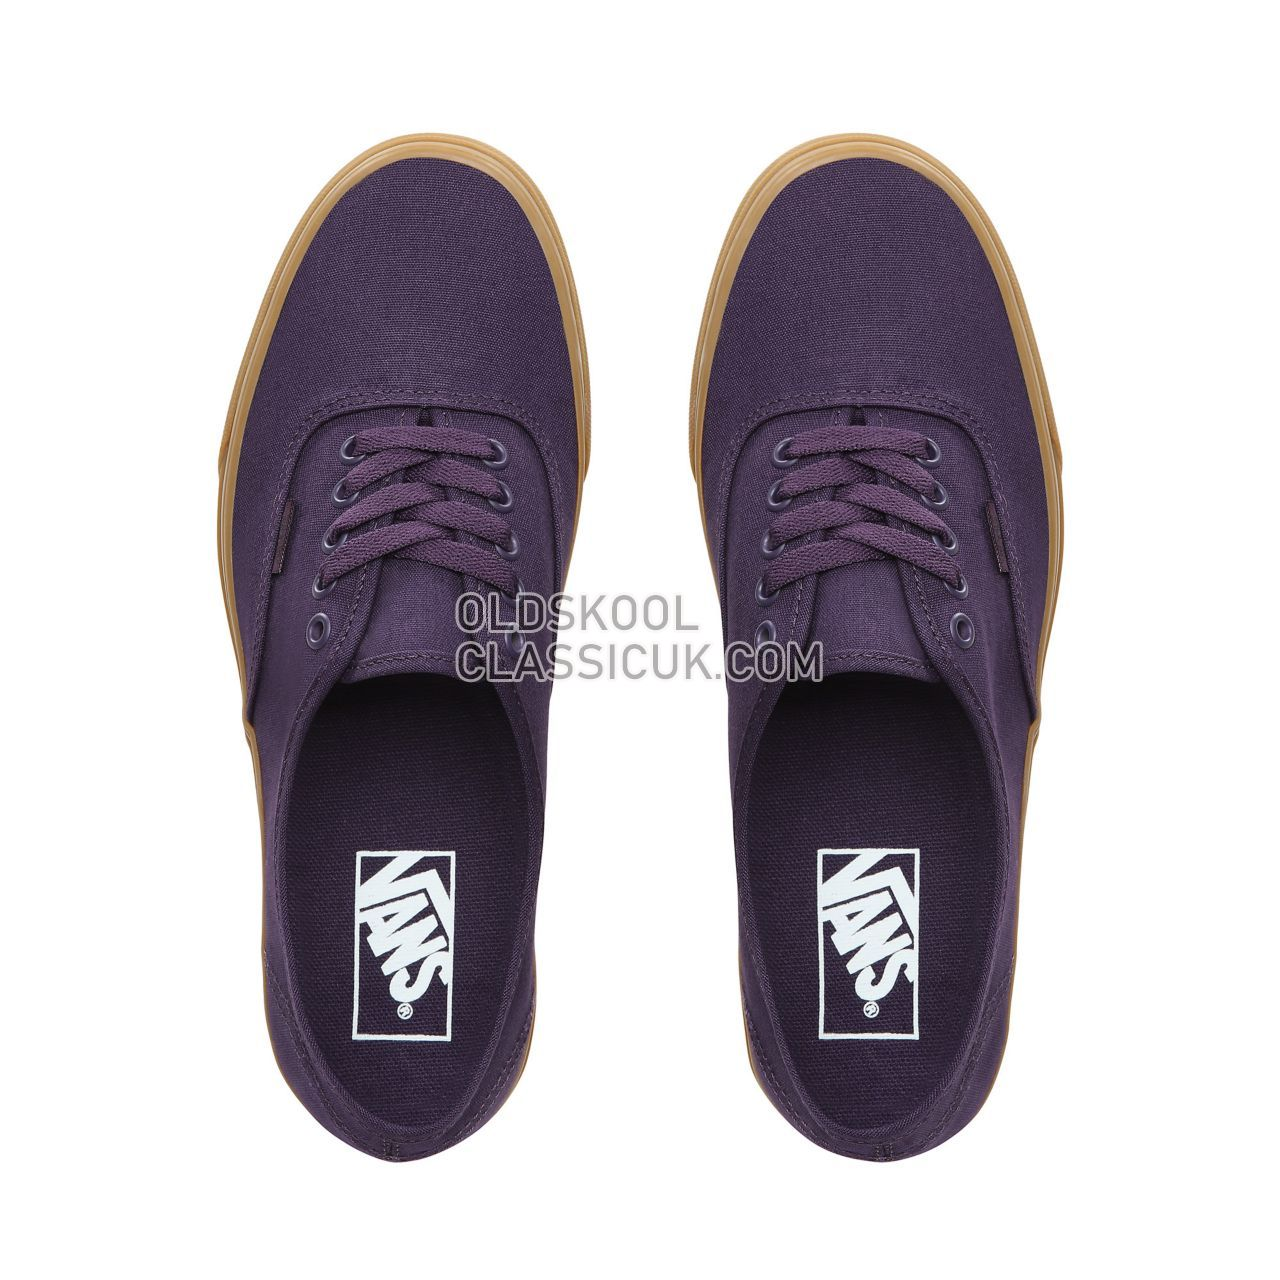 Vans Authentic Sneakers Mens Mysterioso/Gum VN0A38EMVKT Shoes